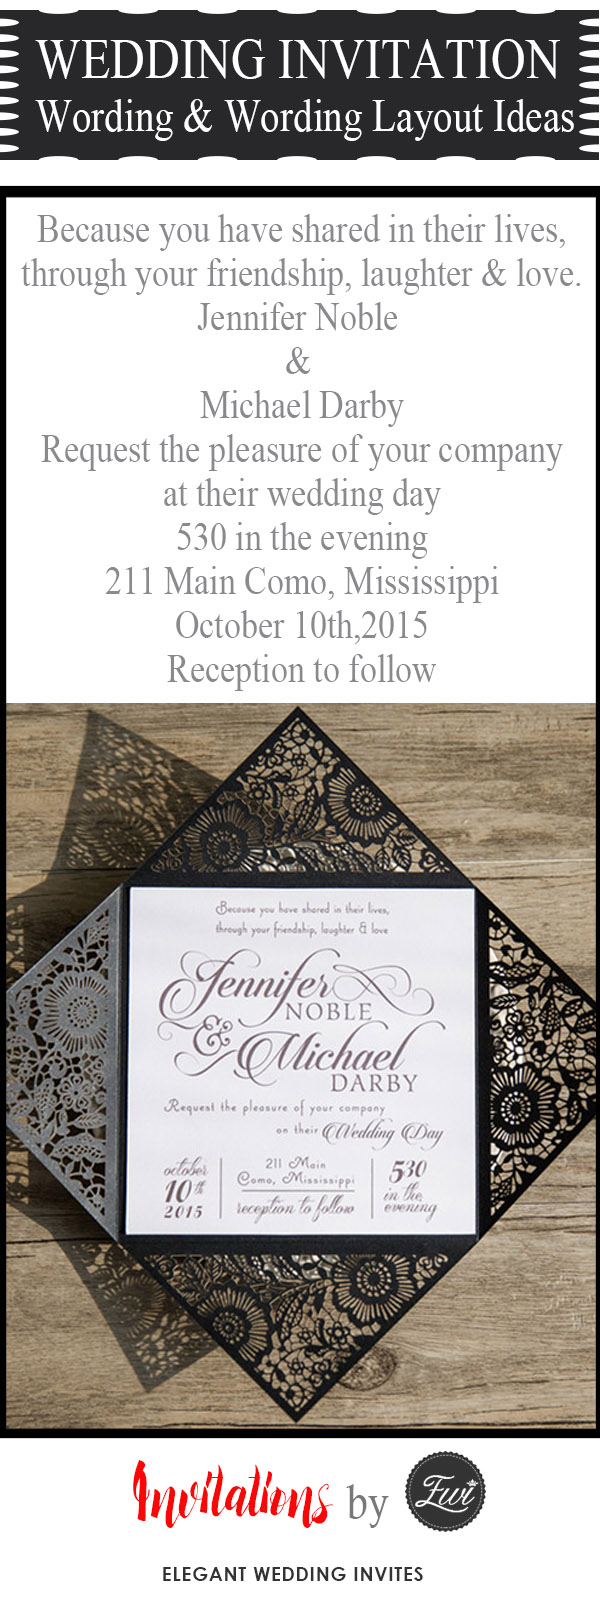 The Basic Rules And Tips For Wording Your Wedding Invitation